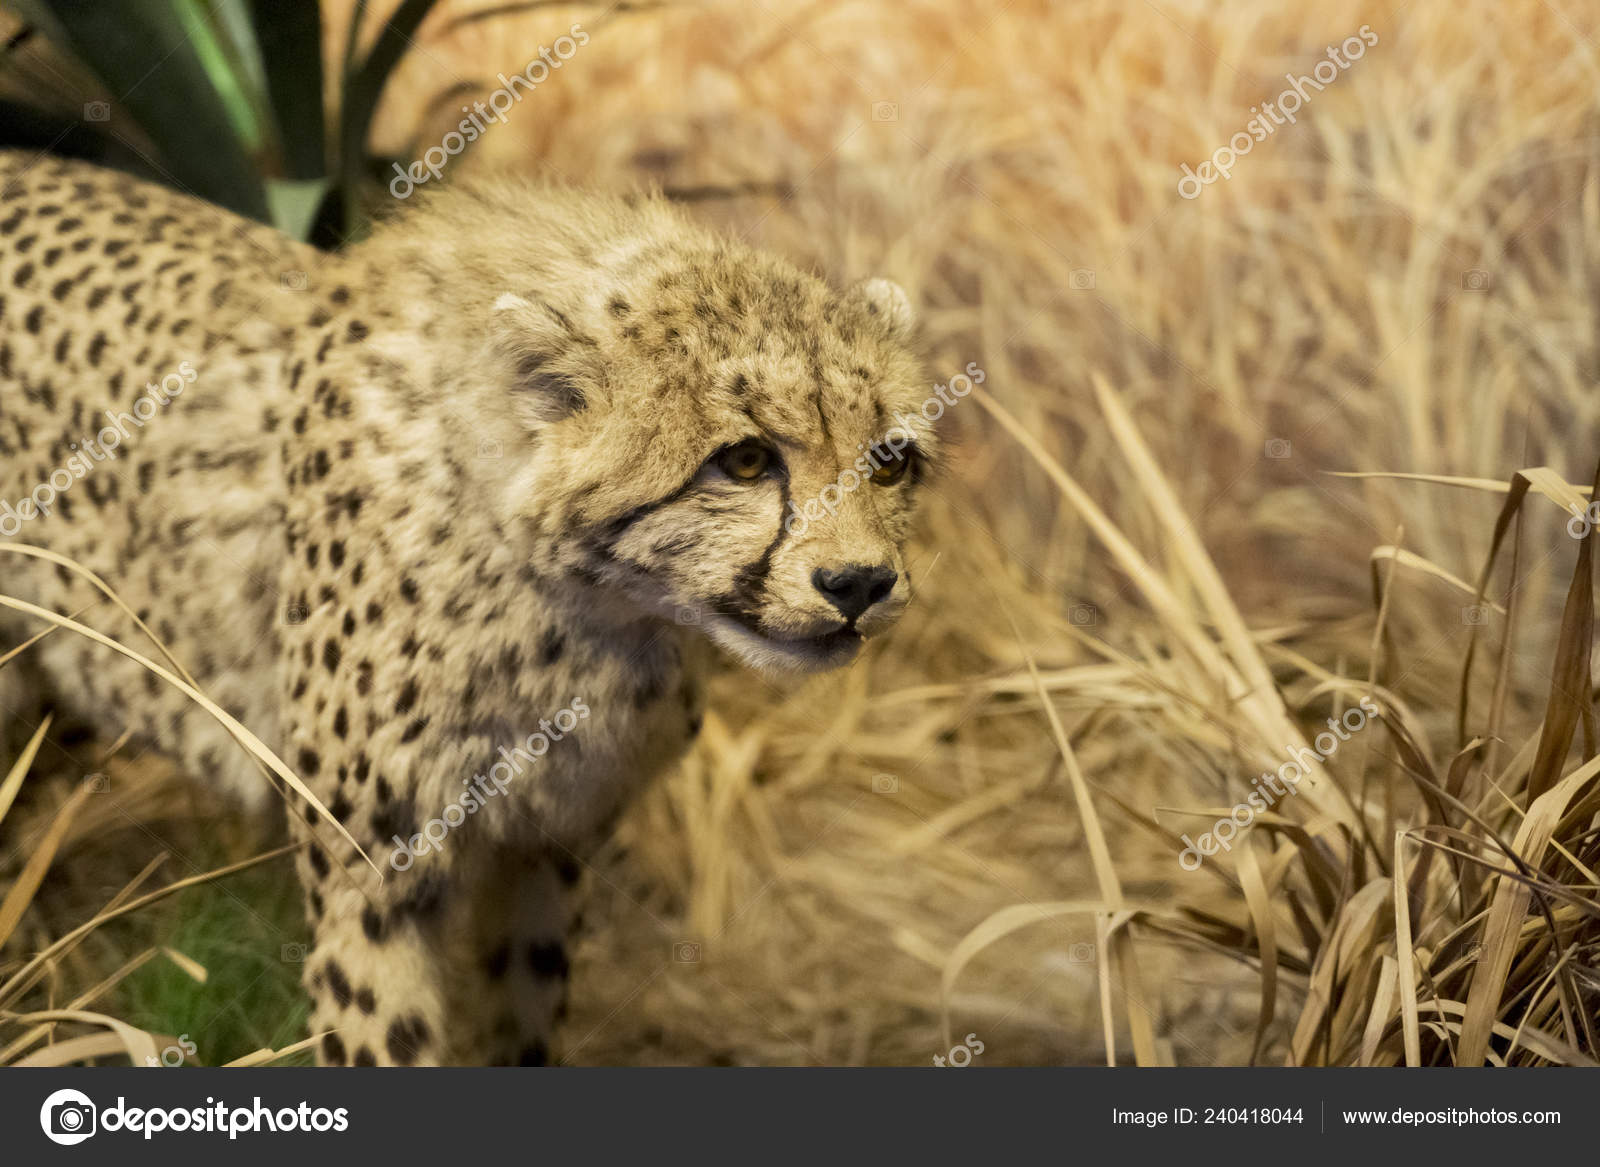 Close Cute Stuffed Cheetah Cub Spotted Batu Secret Zoo Malang Stock Photo C Realinemedia 240418044